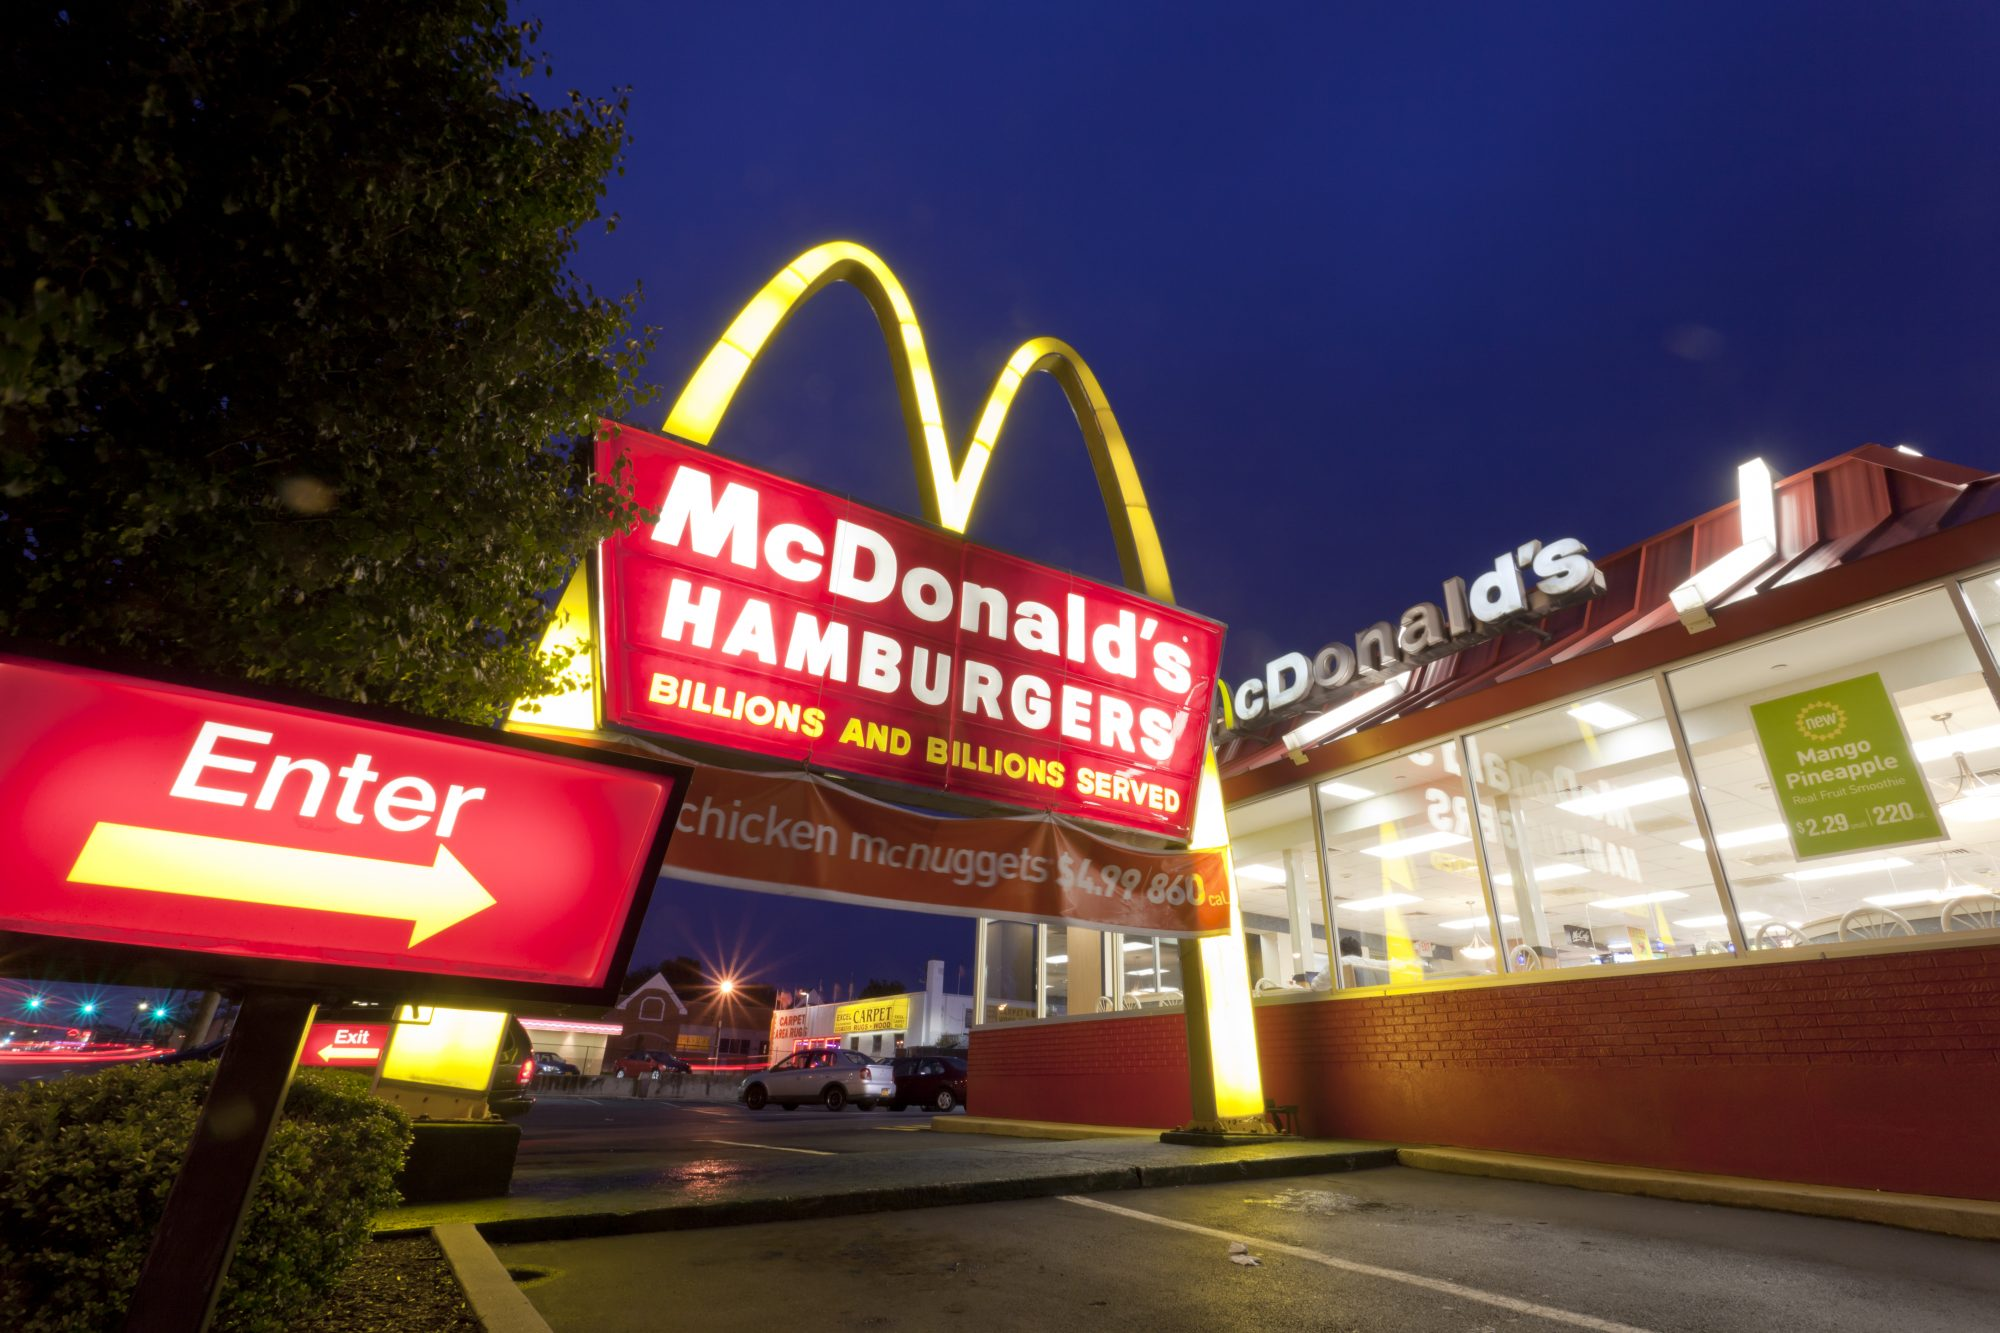 mcdonalds-poster-prank-FT-BLOG0818.jpg